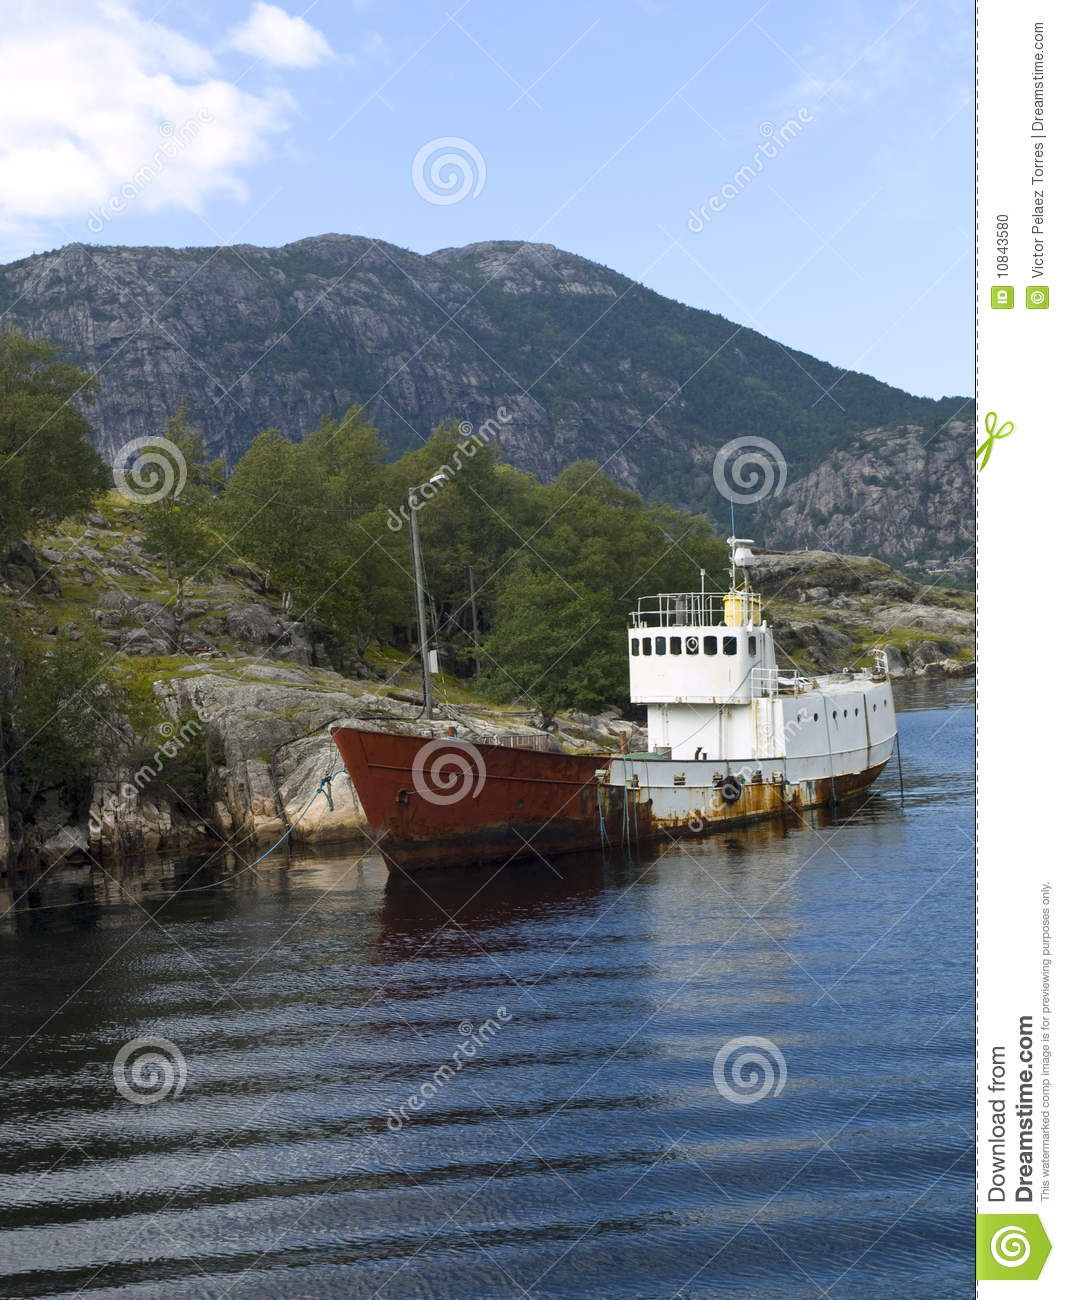 Abandoned Boat Stock Photo. Image Of Deserted, Derelict